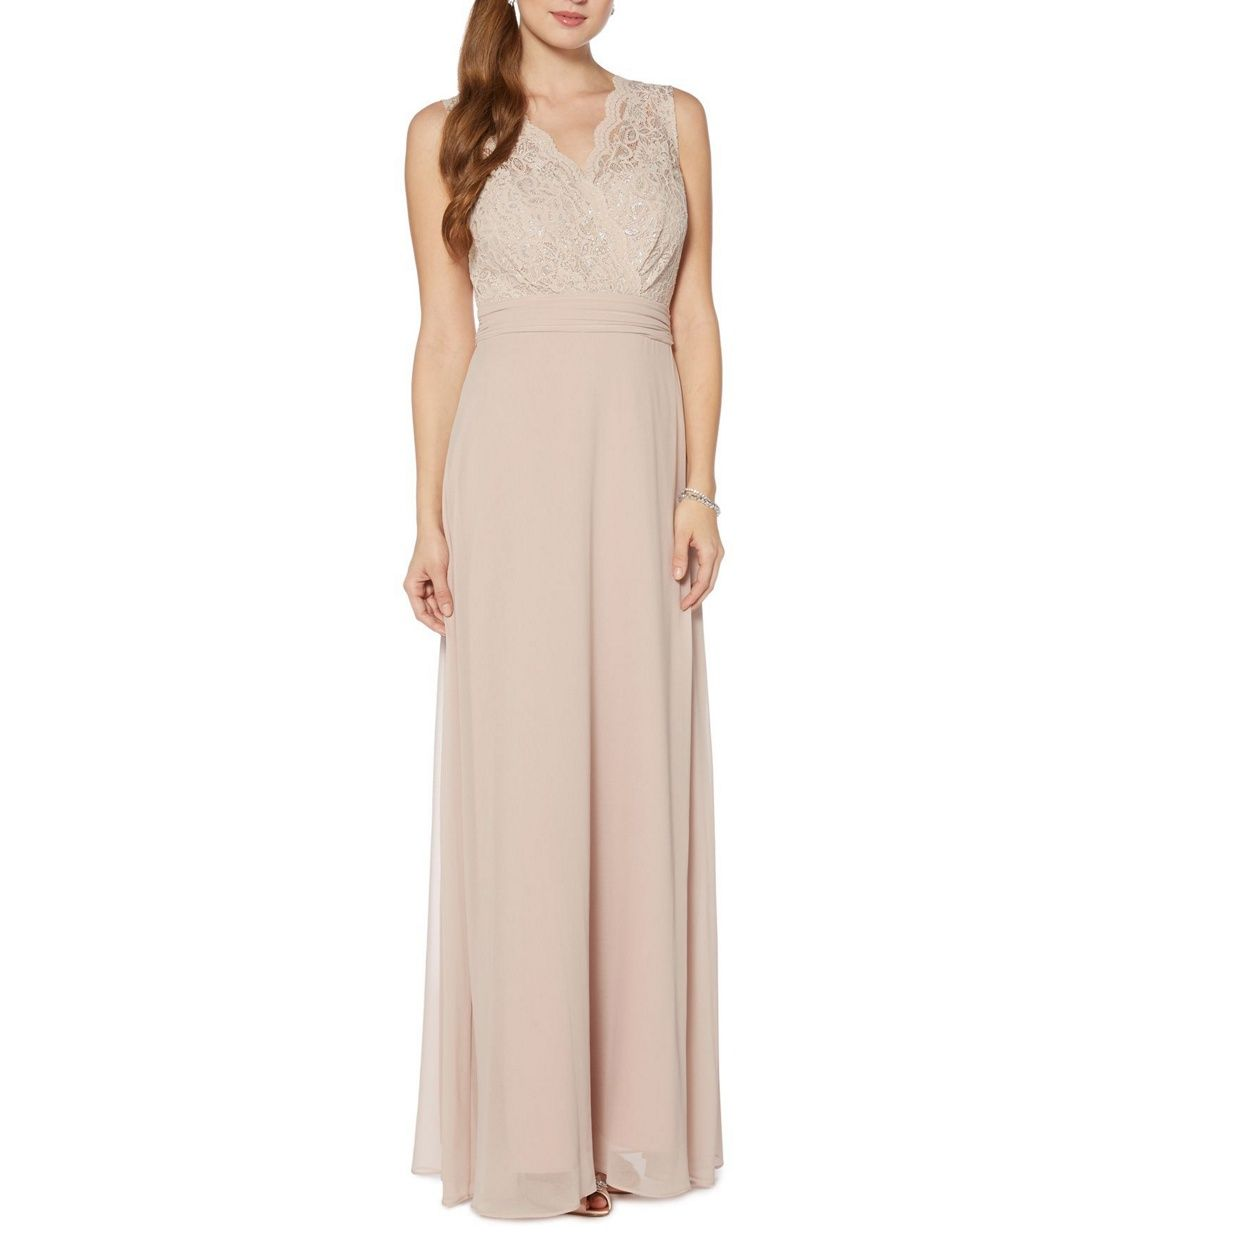 Debut Gold lace maxi dress- at Debenhams.com